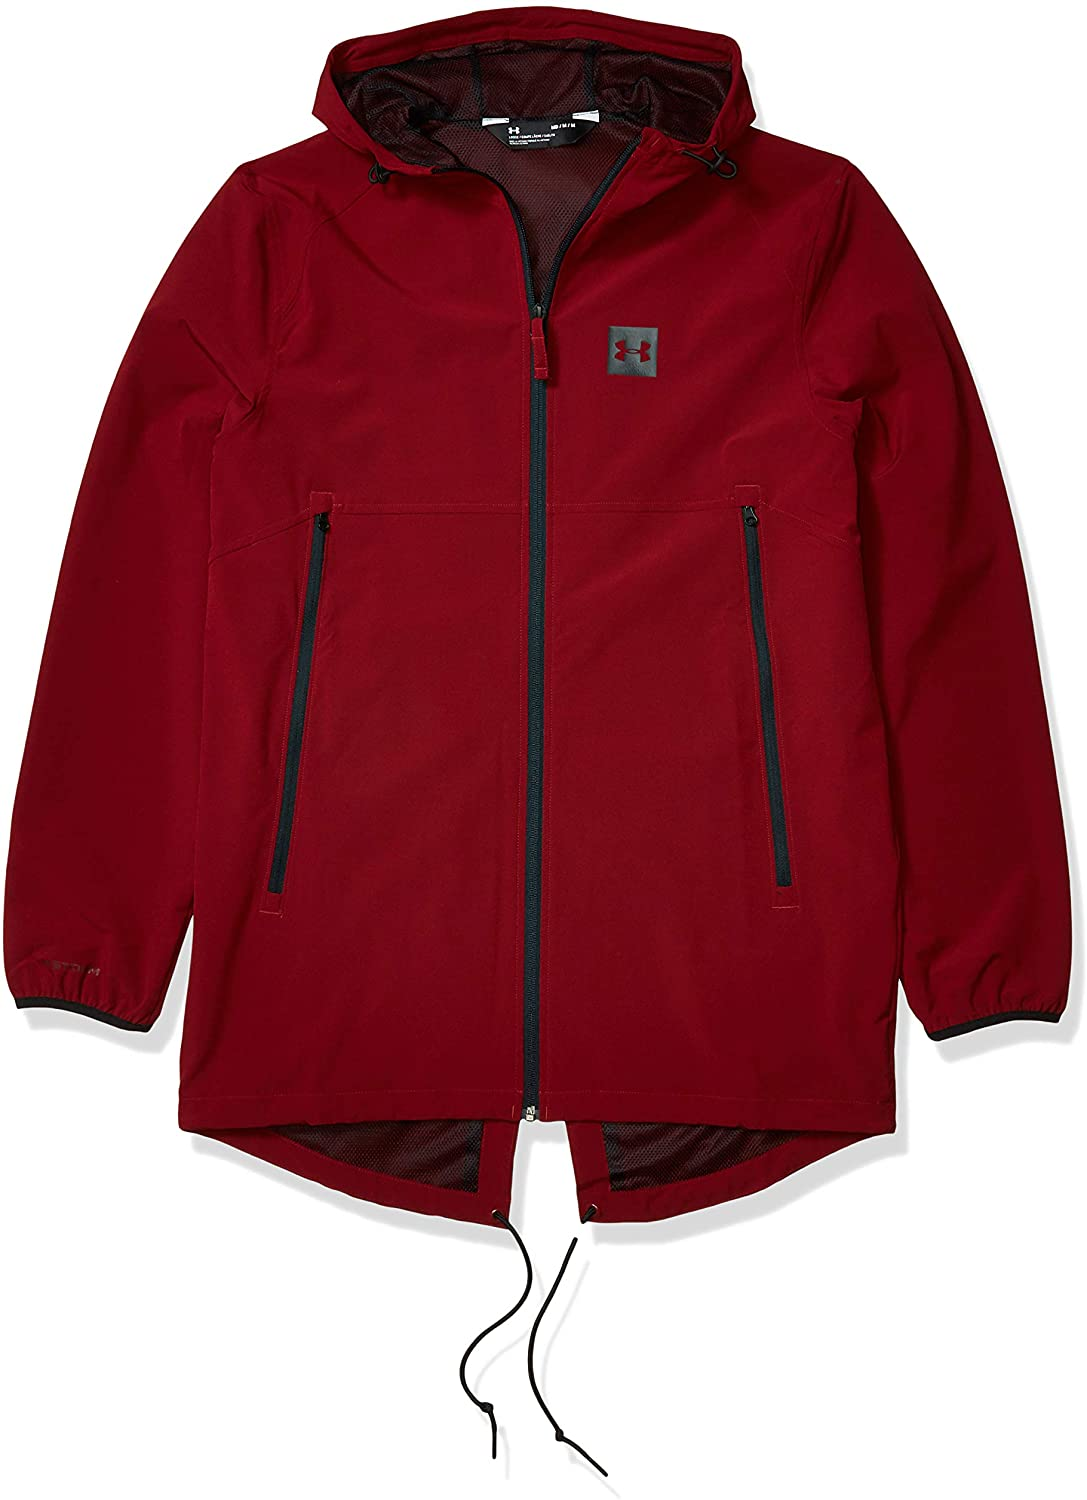 Under Armor Men's Sportstyle Fishtail Jacket